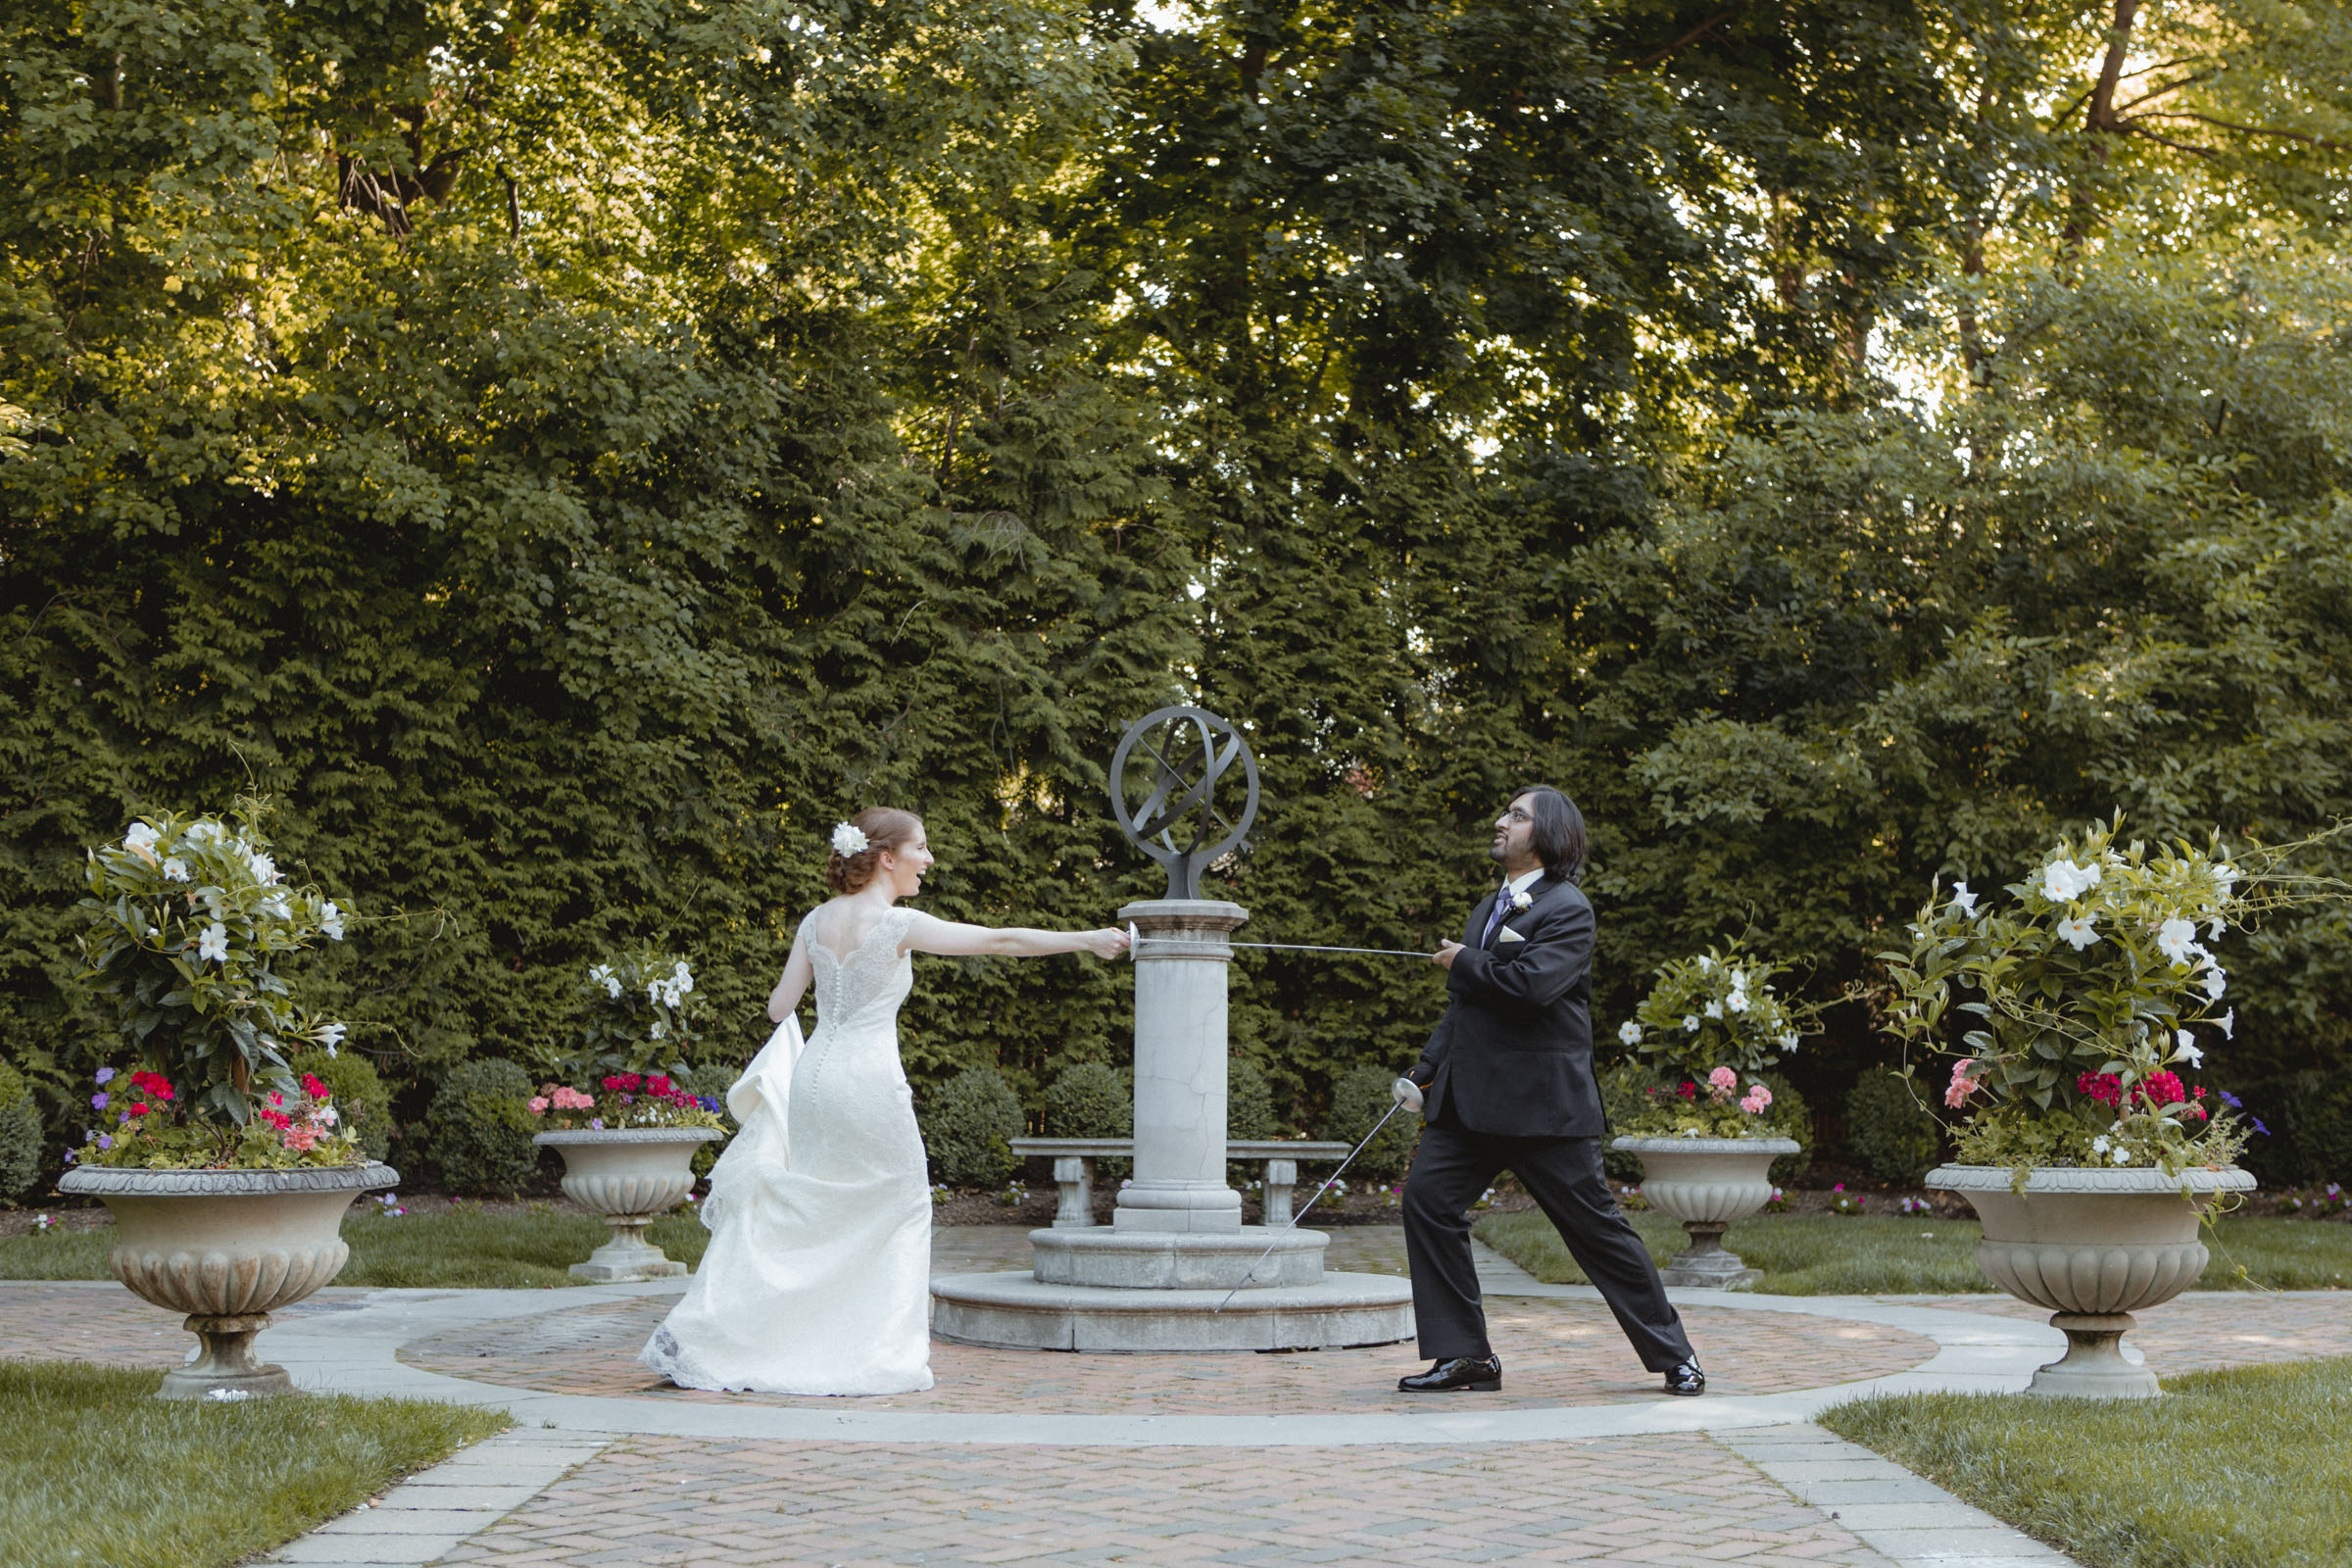 Bride and groom fence with swords, she's winning - - Estate at Florentine Gardens wedding - Hudson Valley Wedding - Kelsey & Anish's wedding - Amy Sims Photography